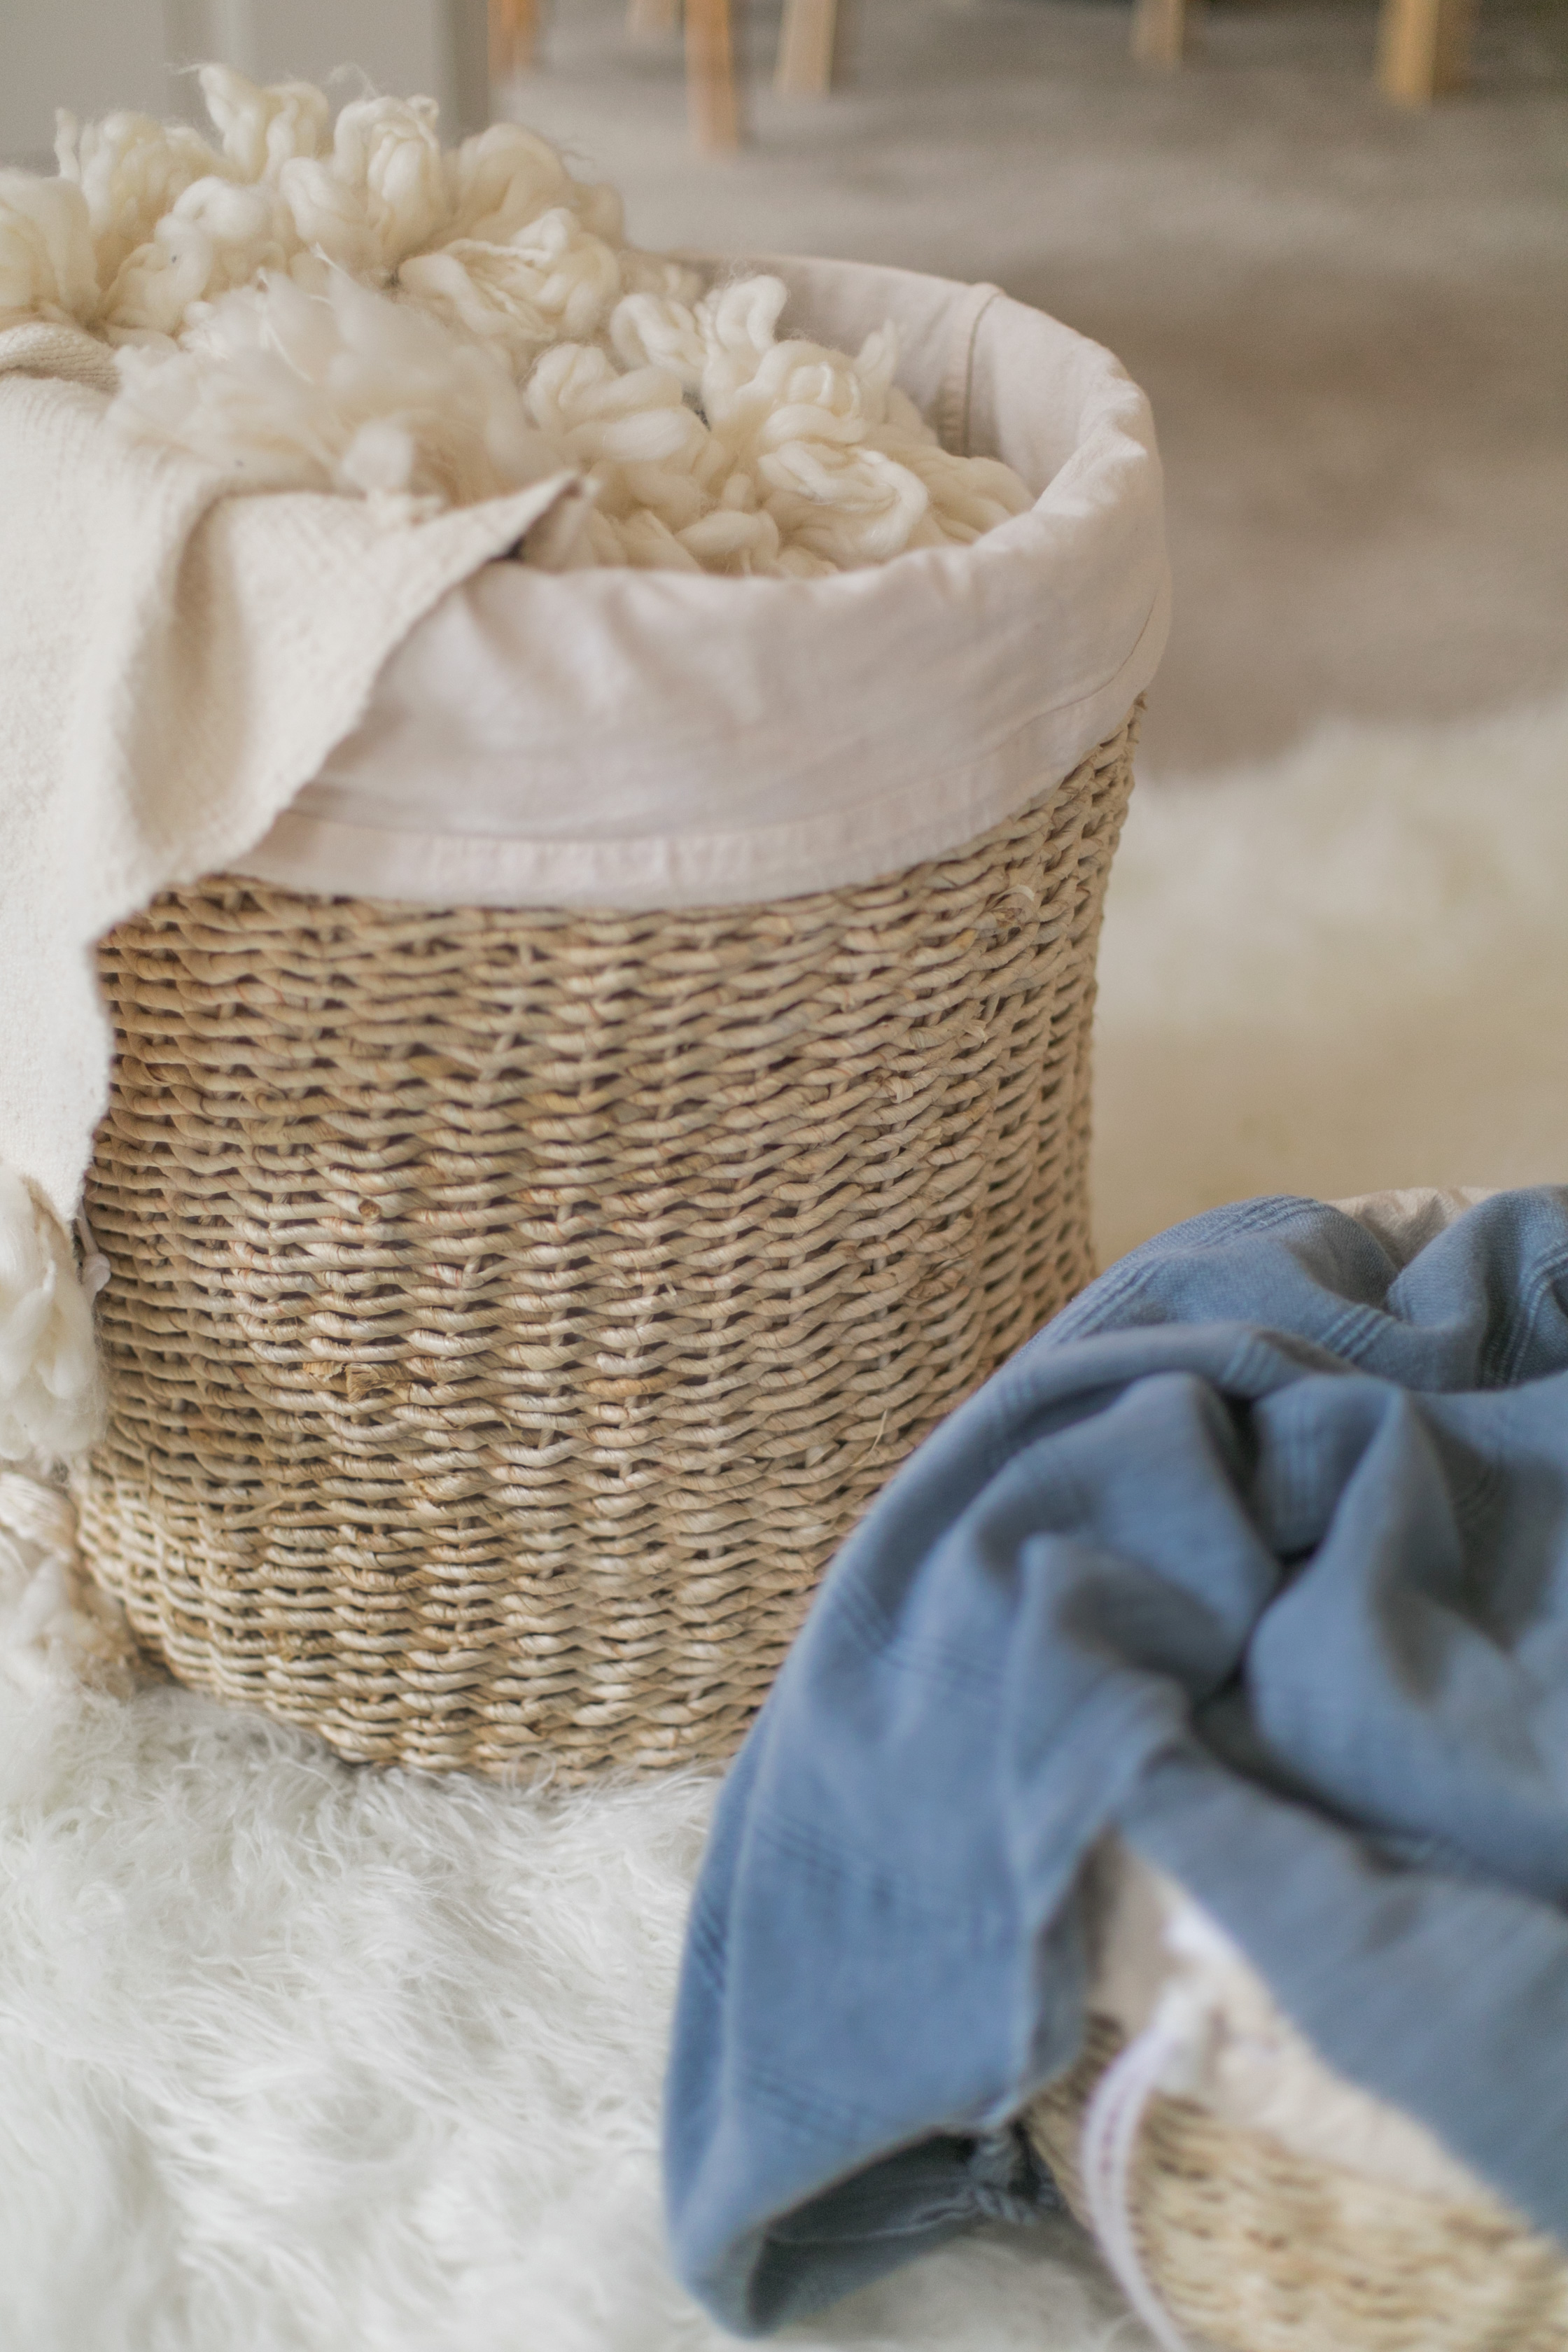 DIY-Laundry-Basket-10